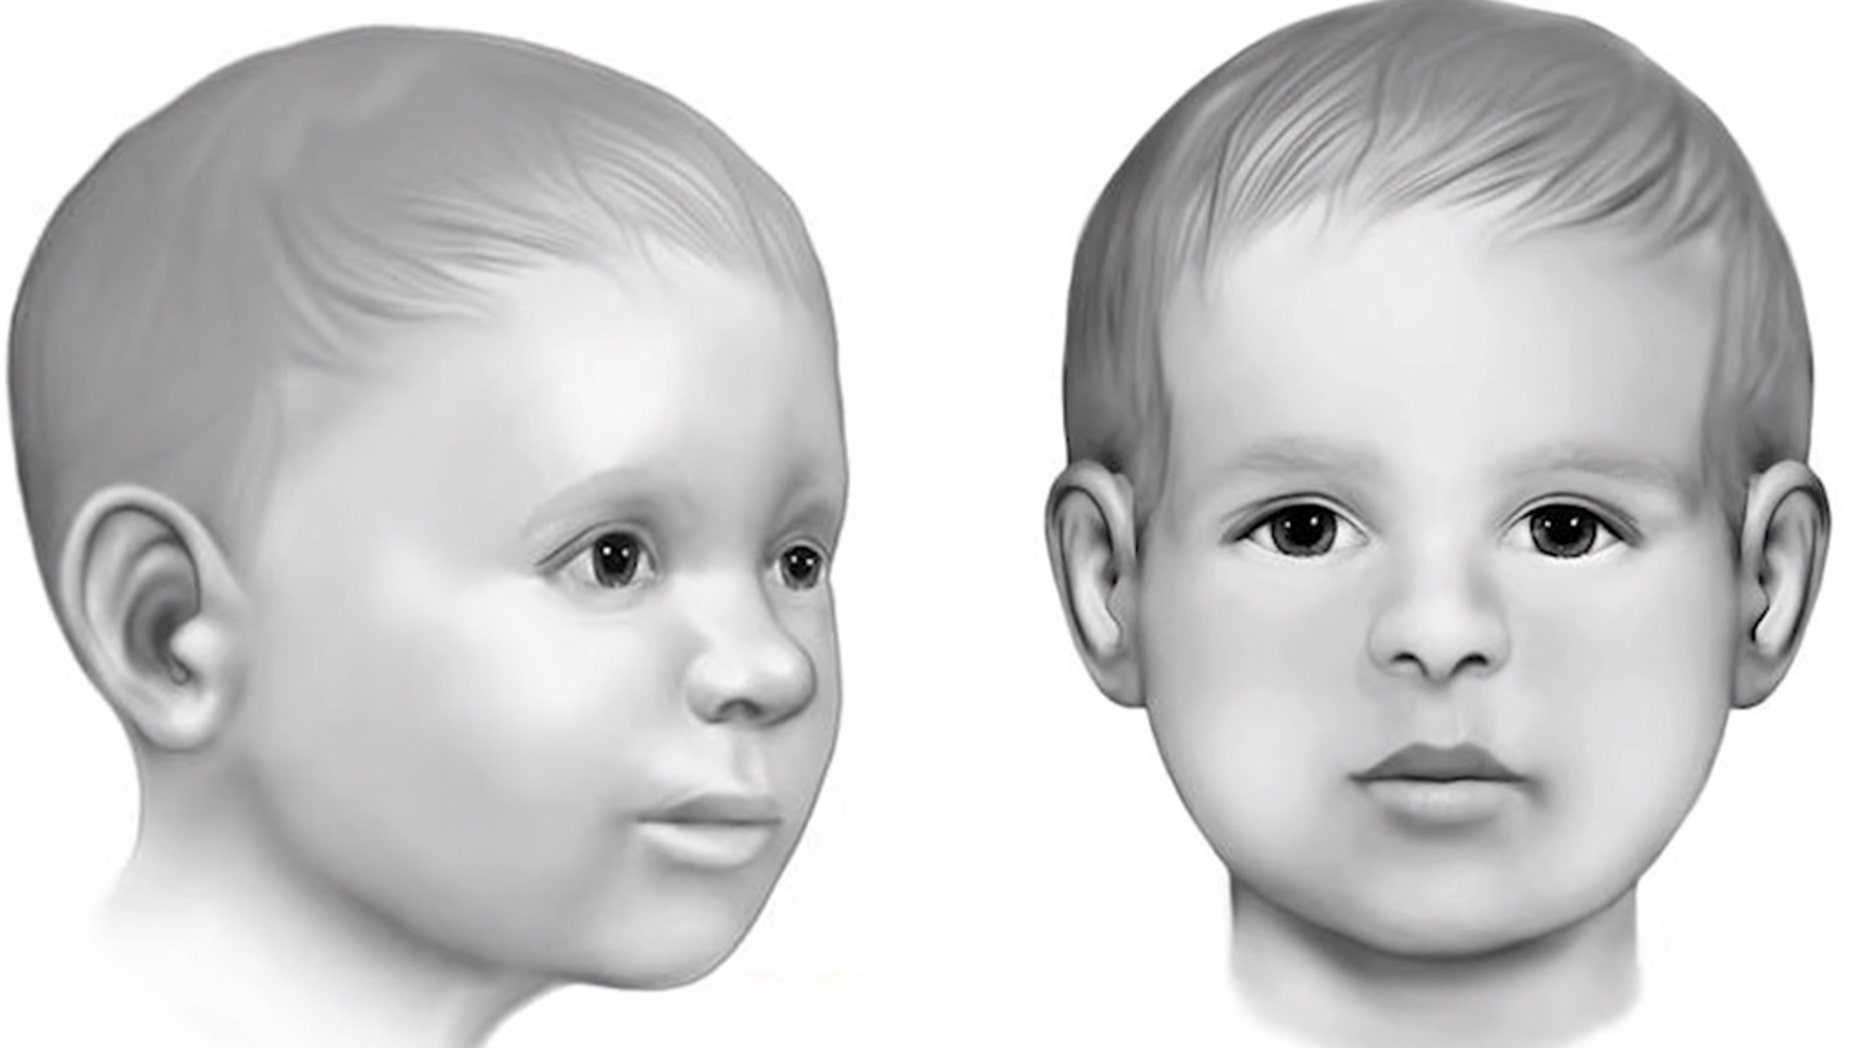 California authorities and the National Center for Missing & Exploited Children (NCMEC) are reportedly looking for information that will help identify a young boy's skeletal remains that were uncovered in California more than a decade ago.